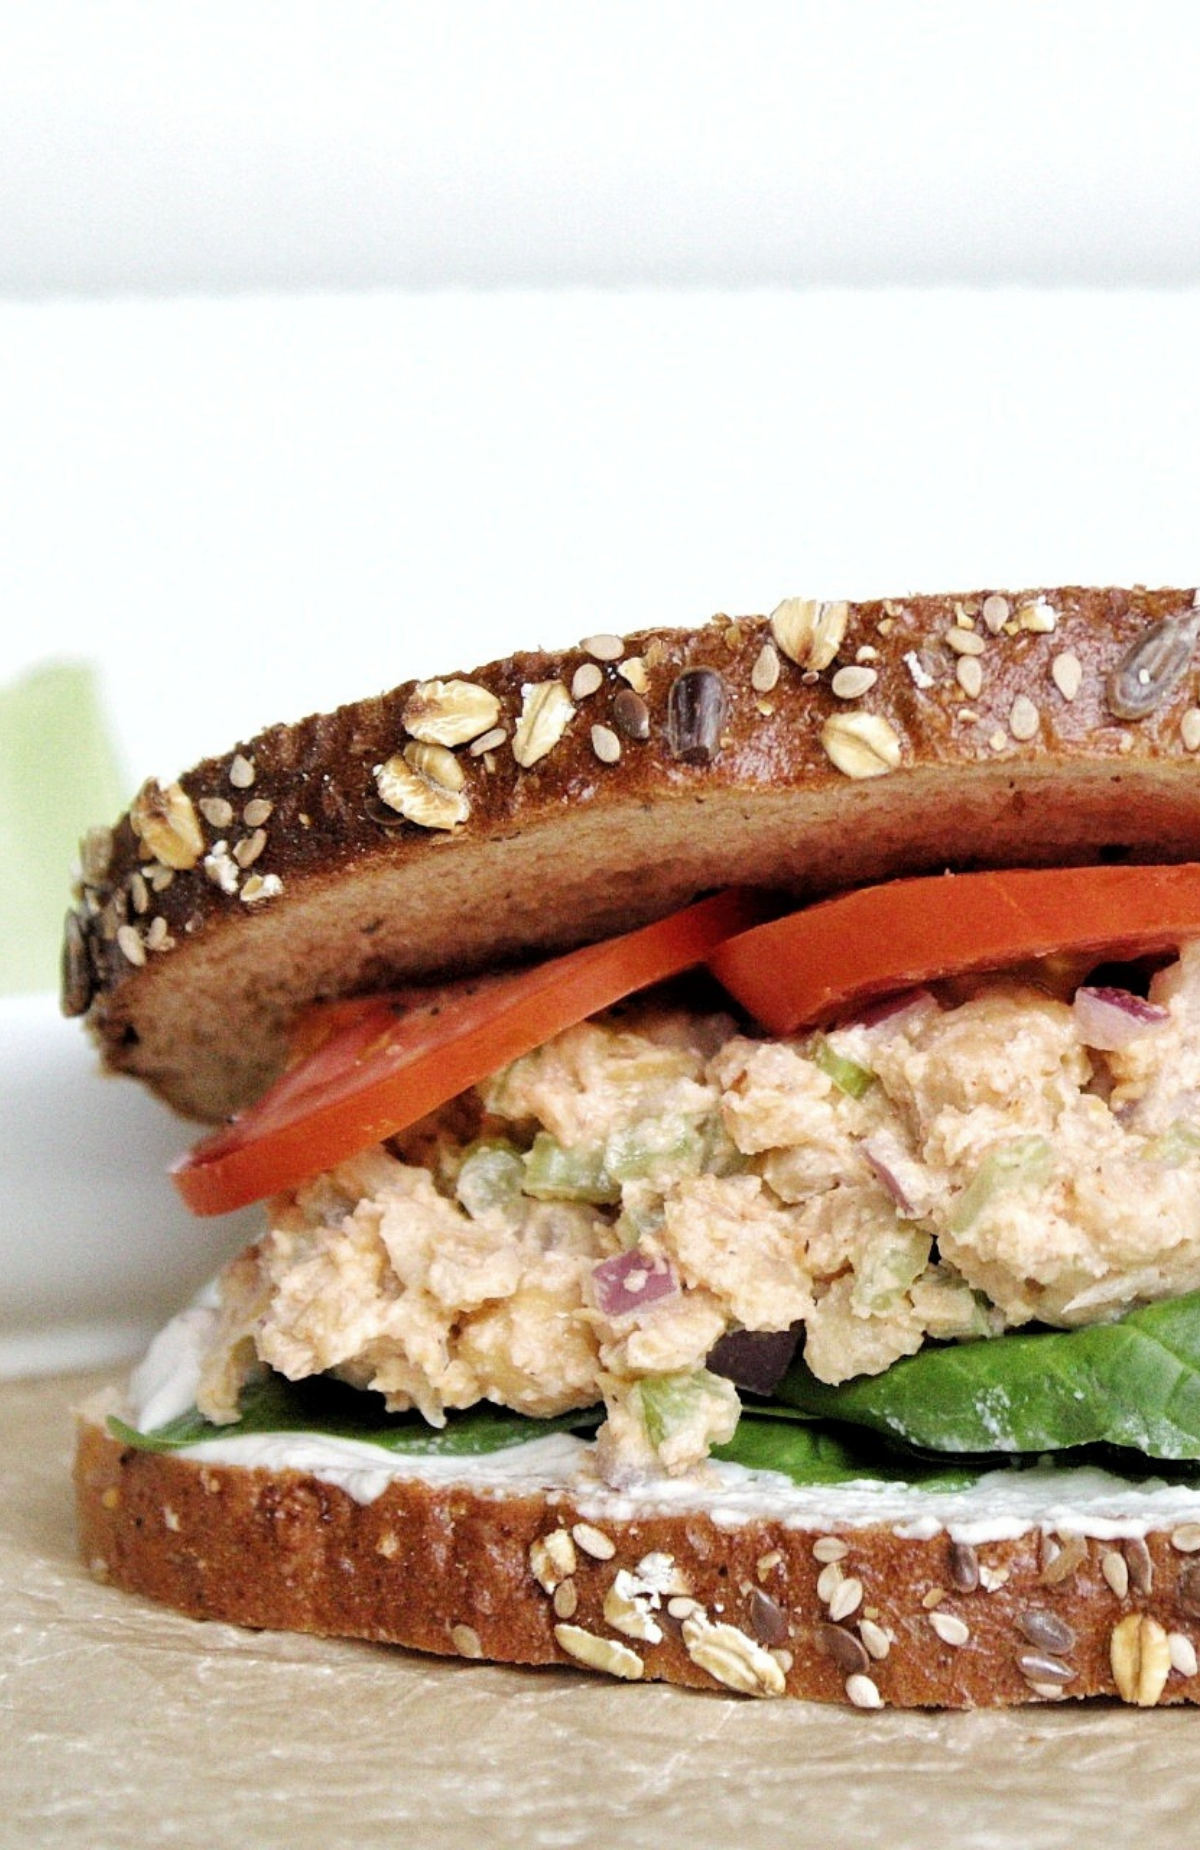 Closeup of chickpea salad sandwich with spinach, cashew cream, and sliced tomatoes